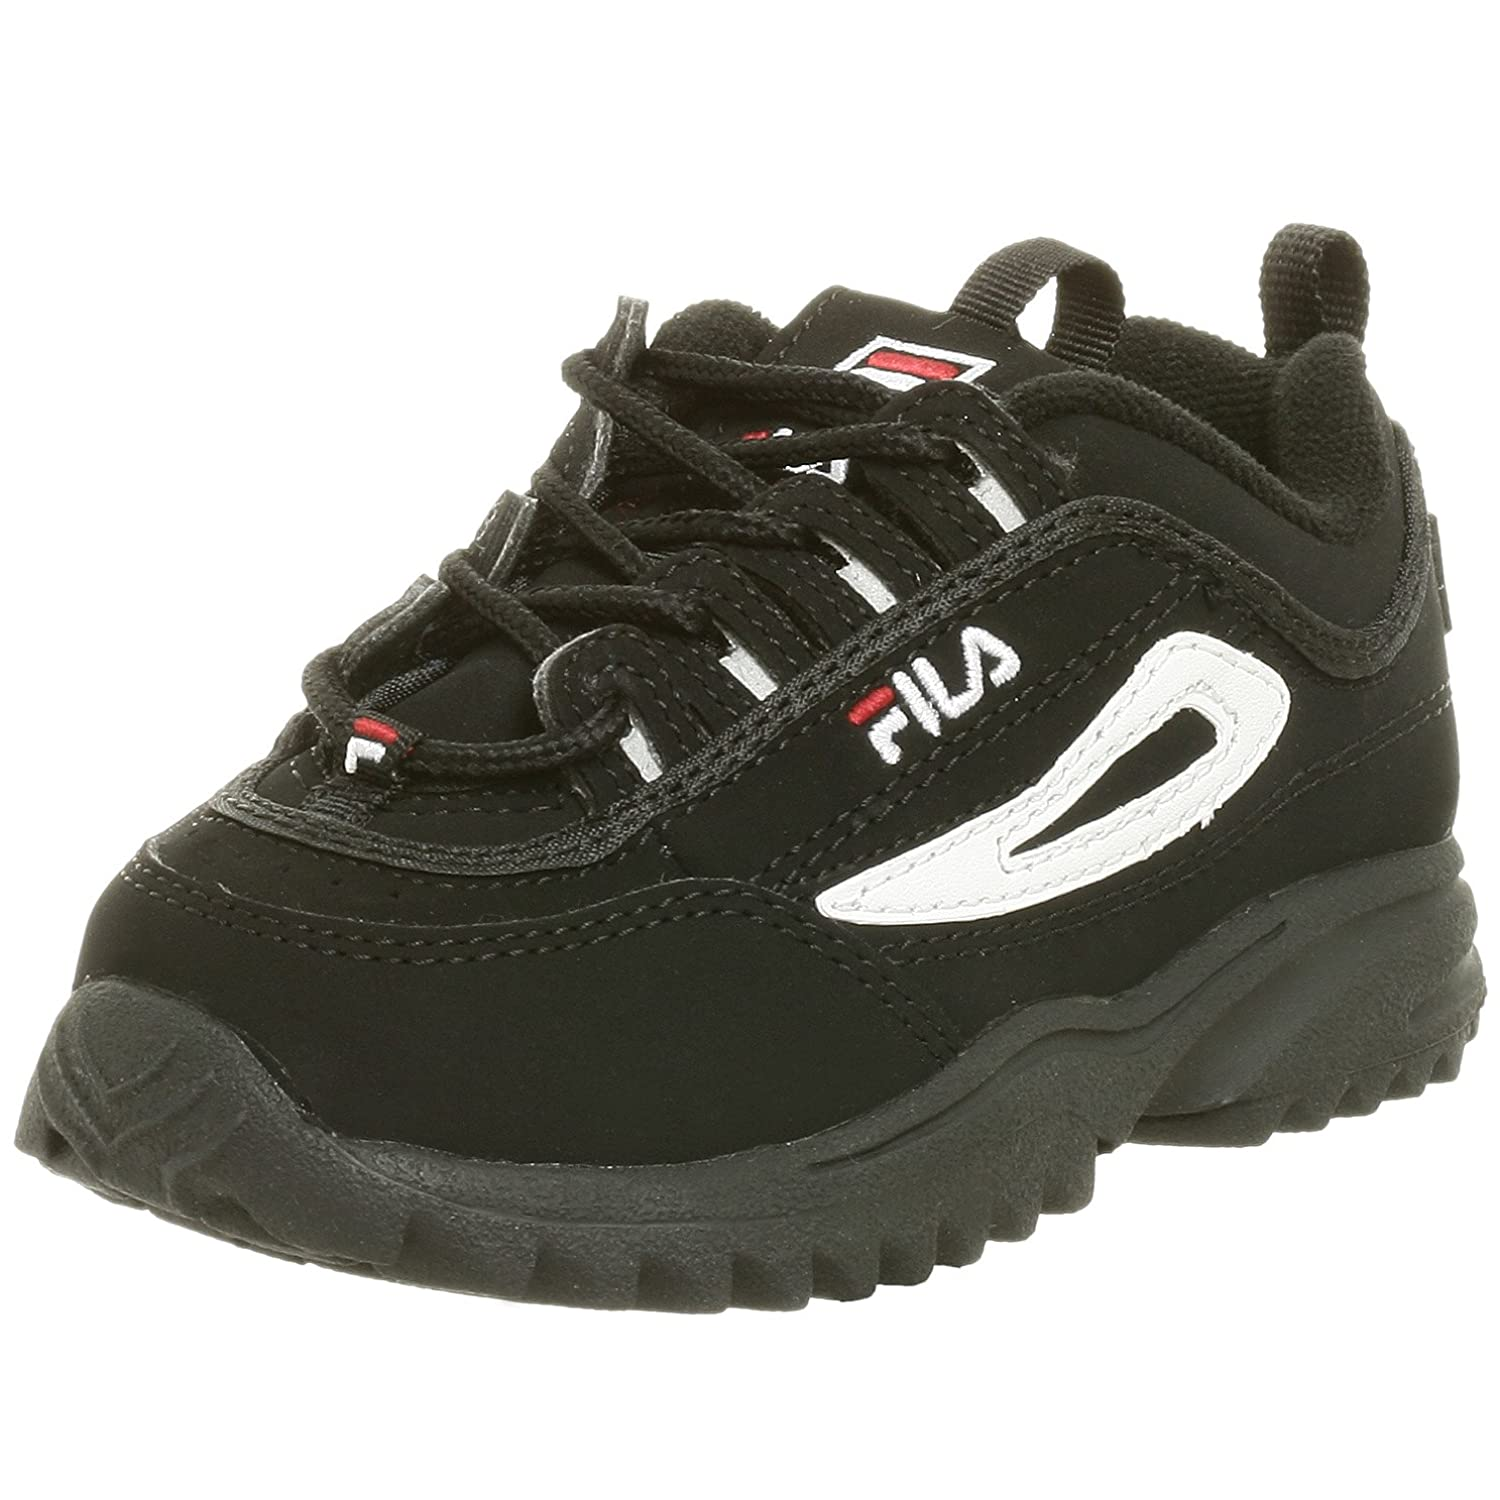 fila disruptor 2 womens. fila disruptor 2 womens